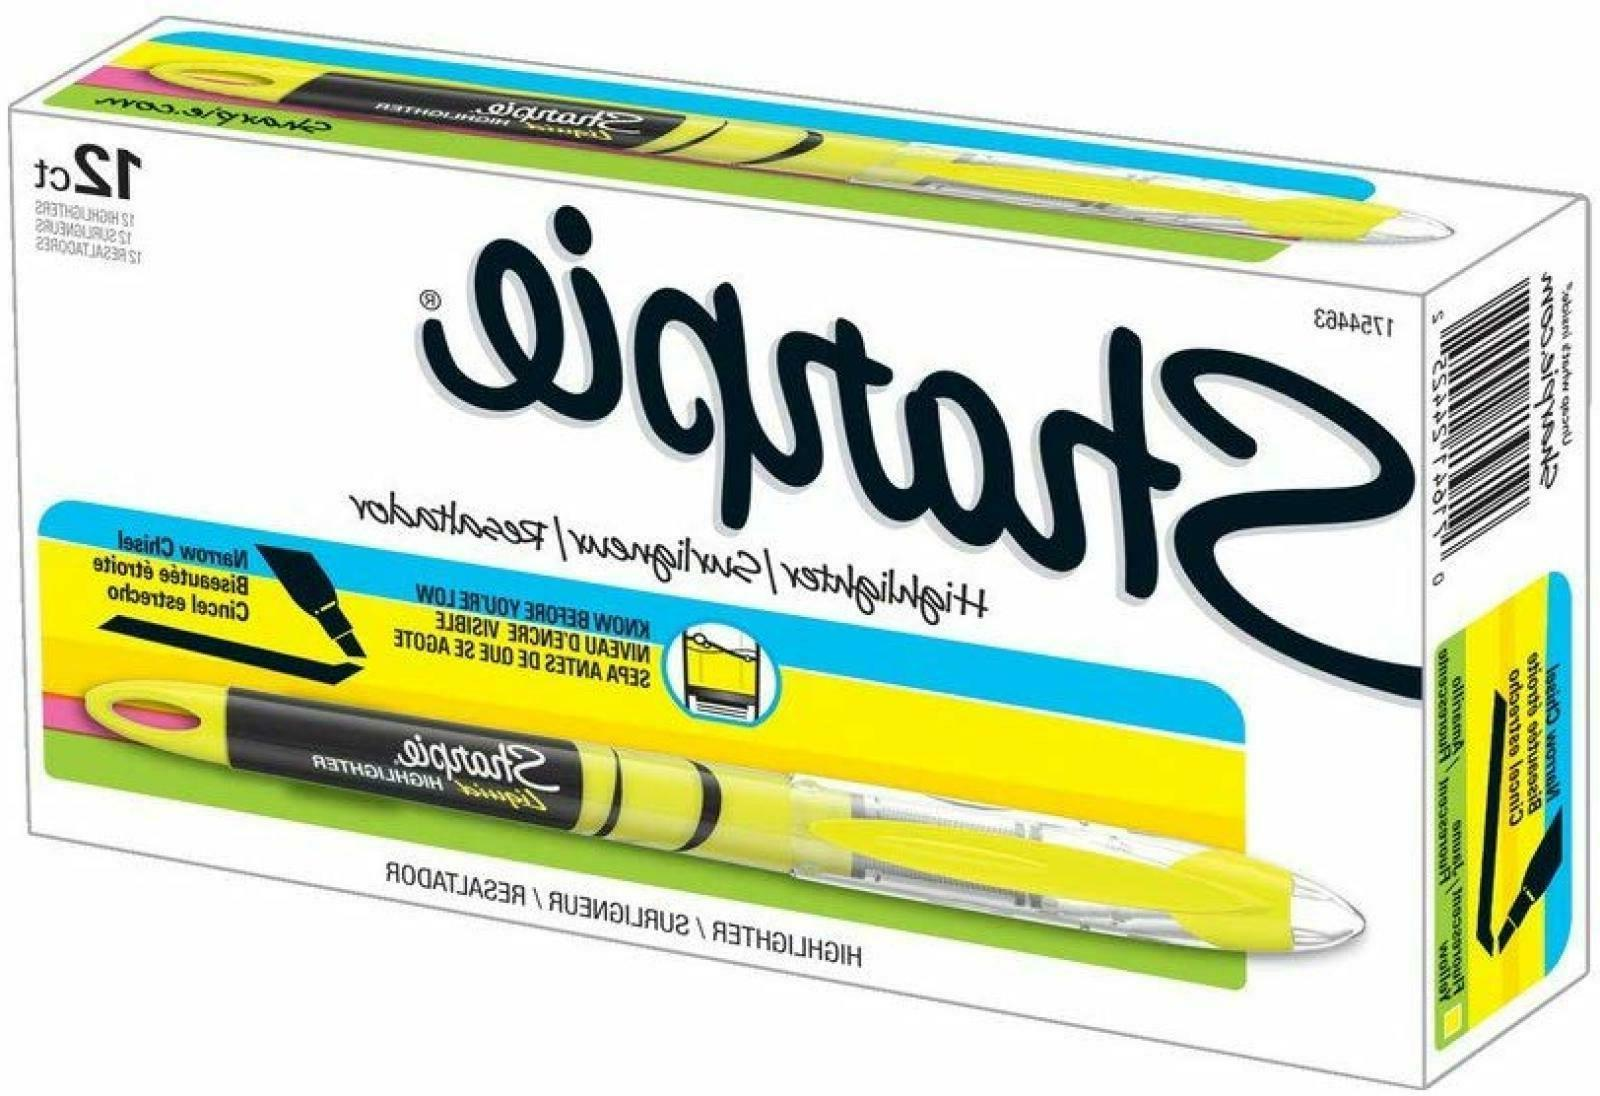 sharpie highlighters chisel tip fluorescent yellow 12